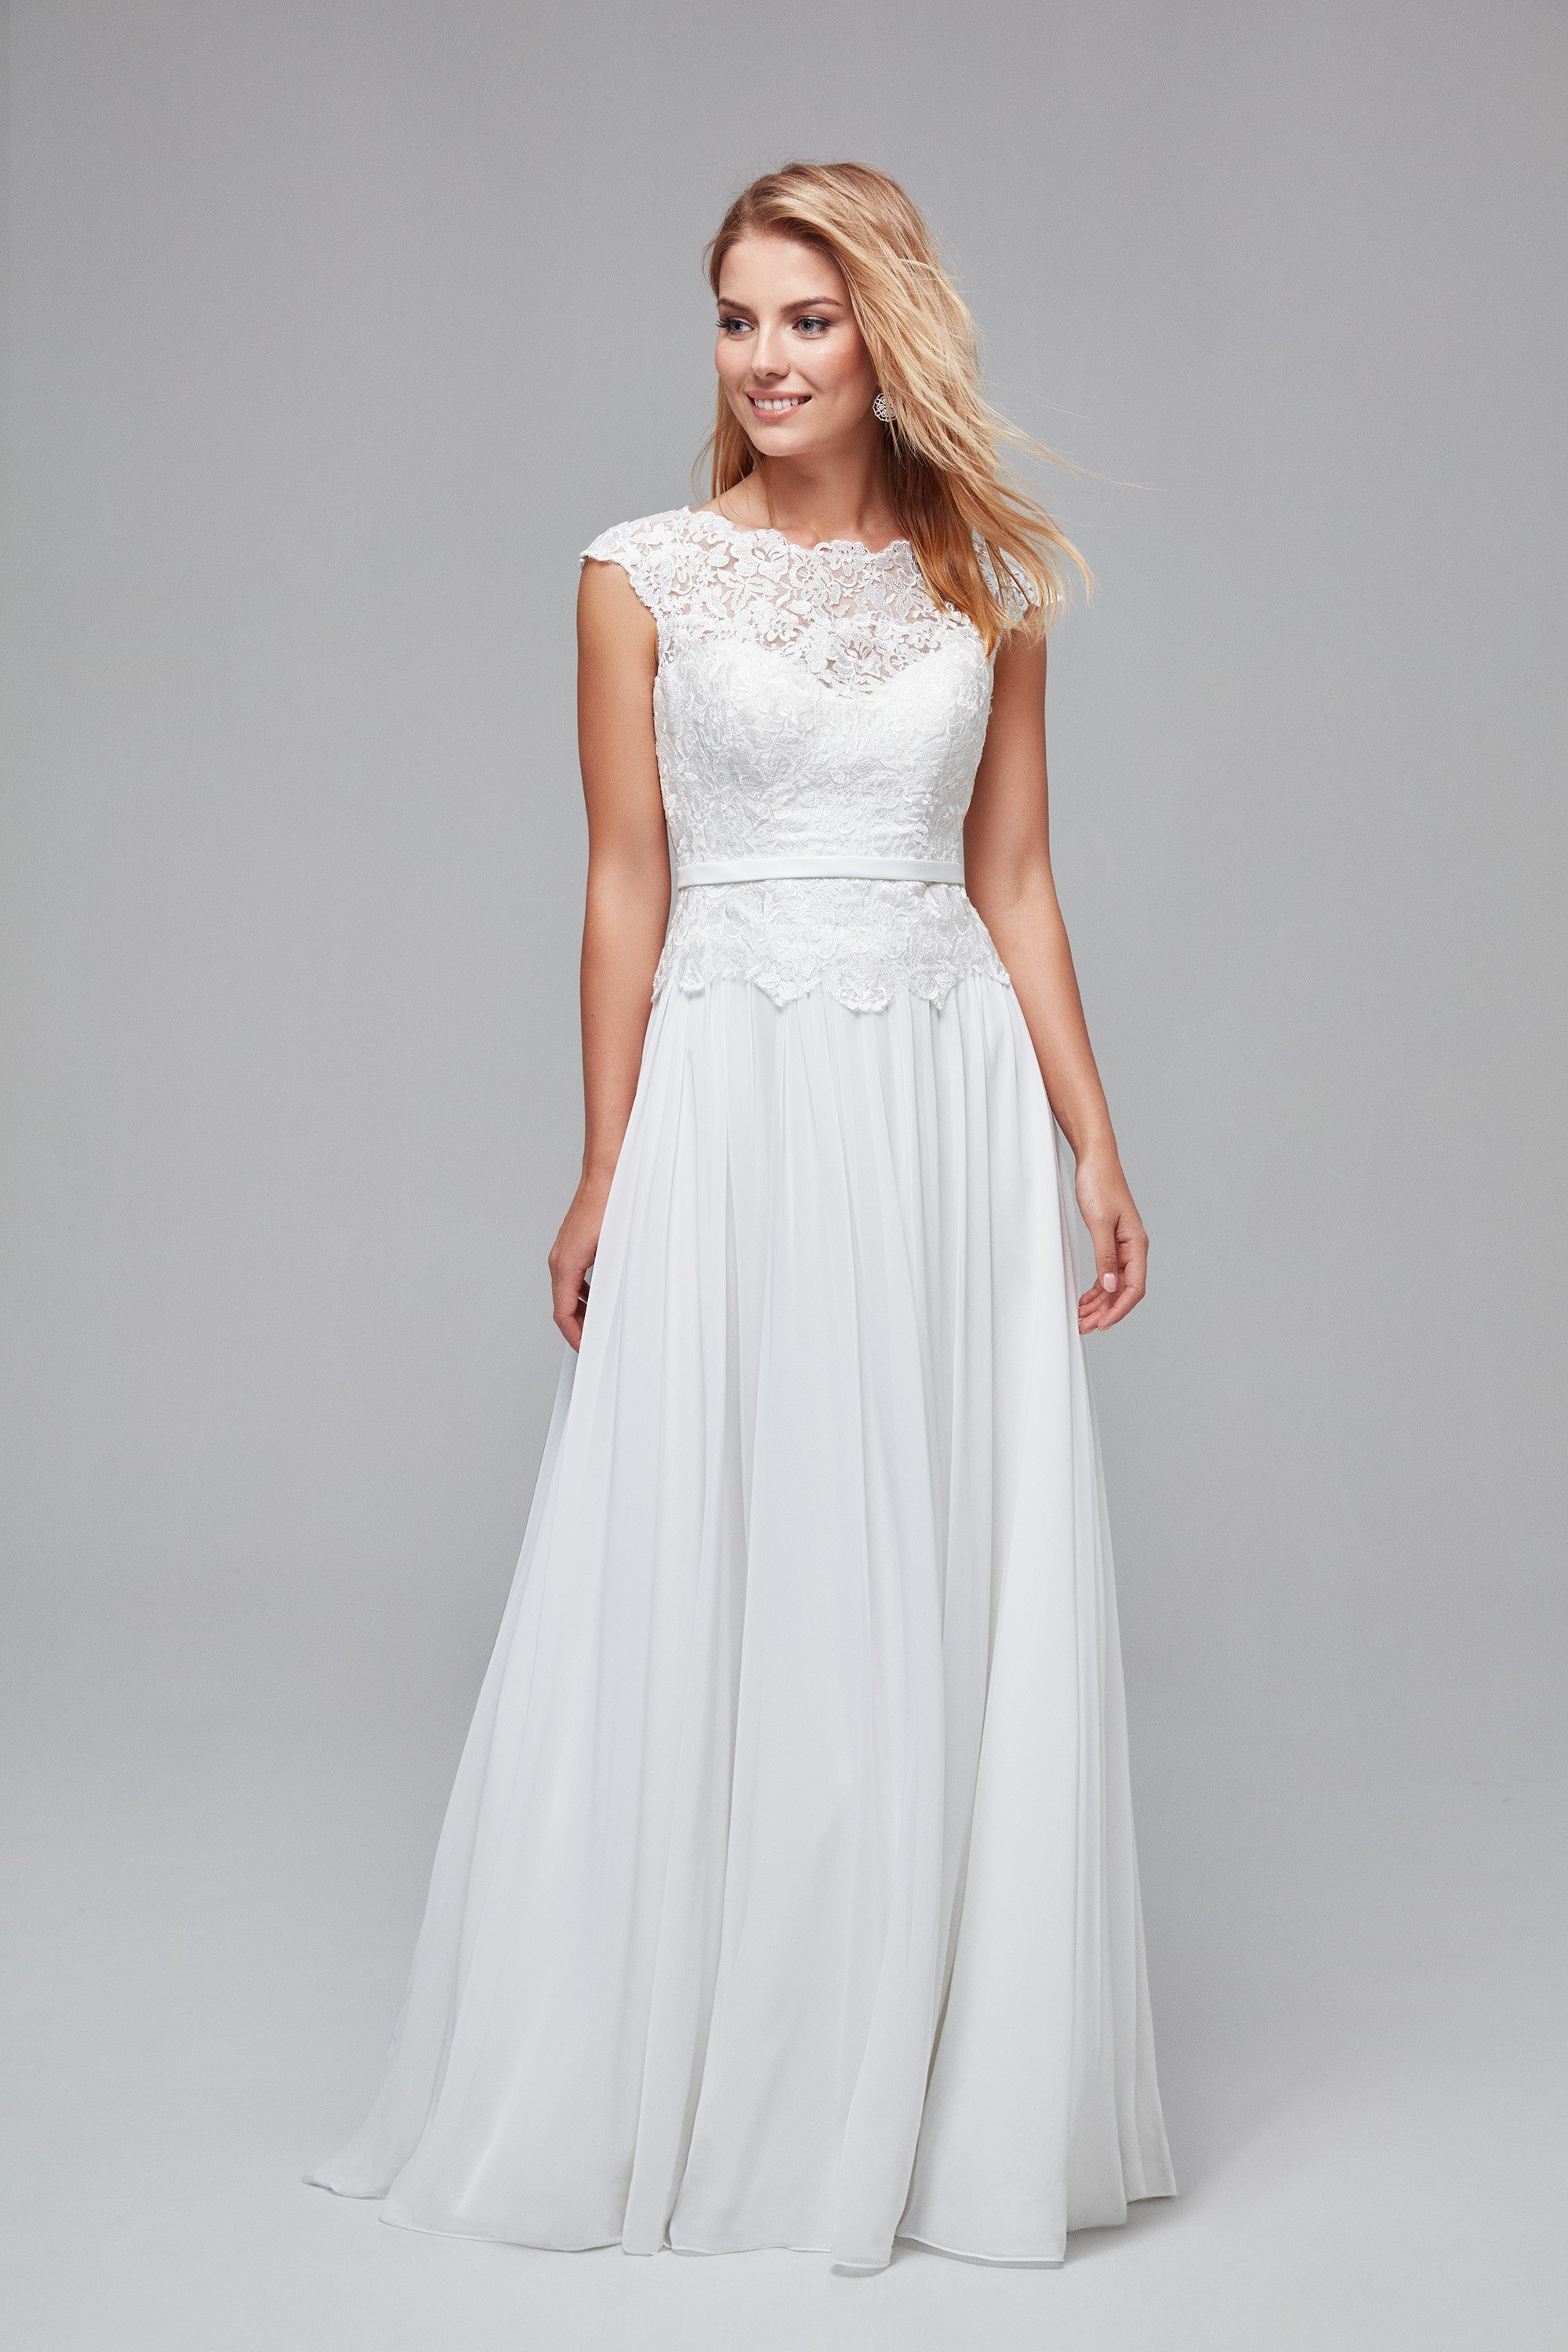 92a3f31844d Illusion Lace and Chiffon Plus Size Wedding Dress-9WG3851